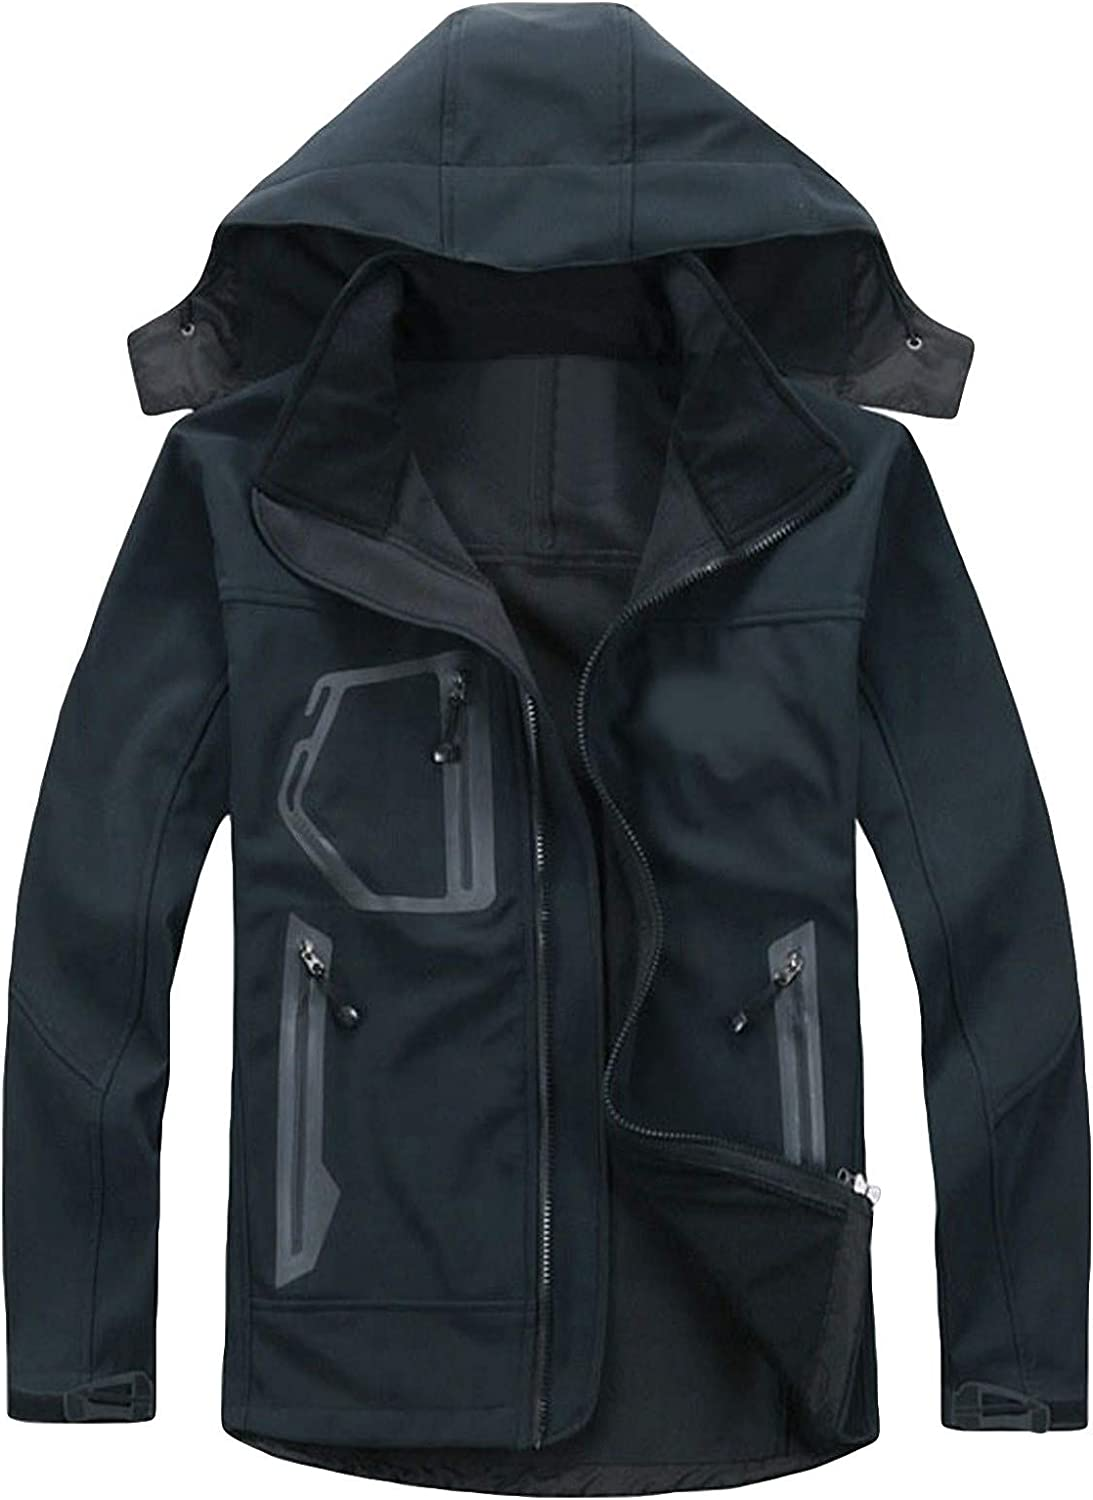 Leirke Womens Jacket Water Resistant Ladies Our shop most Directly managed store popular Rain Hooded Jackets